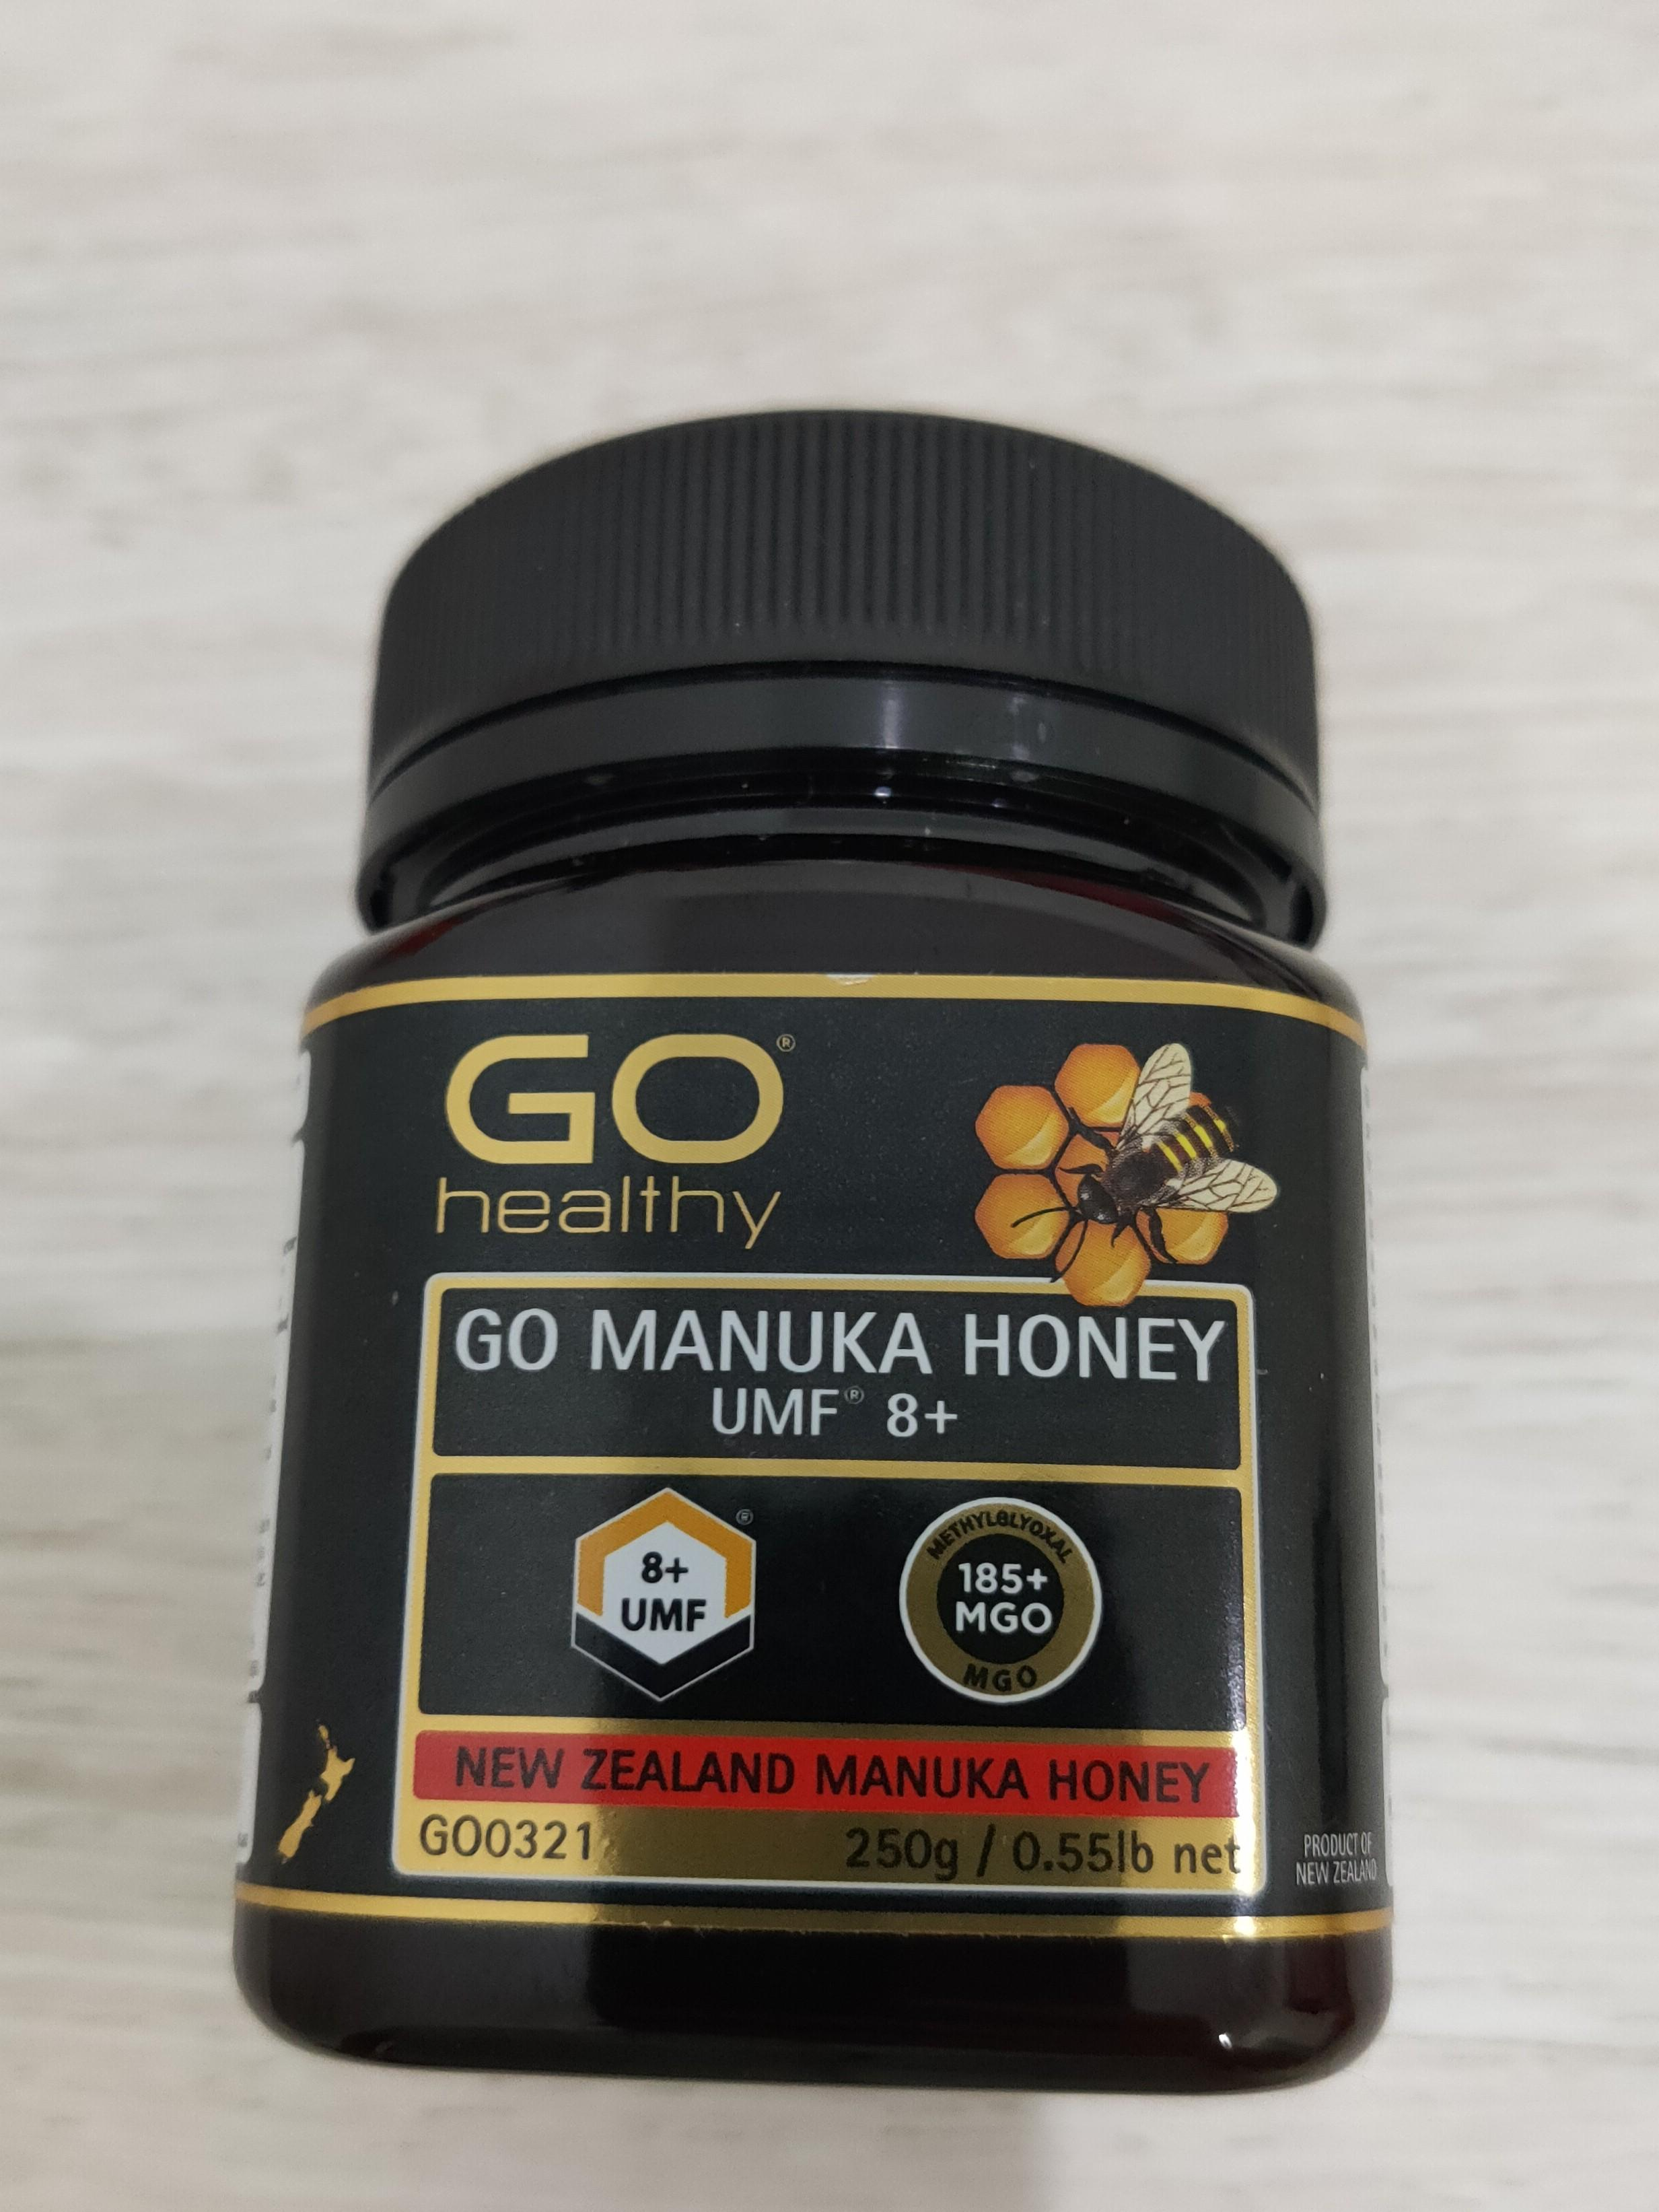 GO healthy - GO MANUKA HONEY UMF 8+, MGO 185+